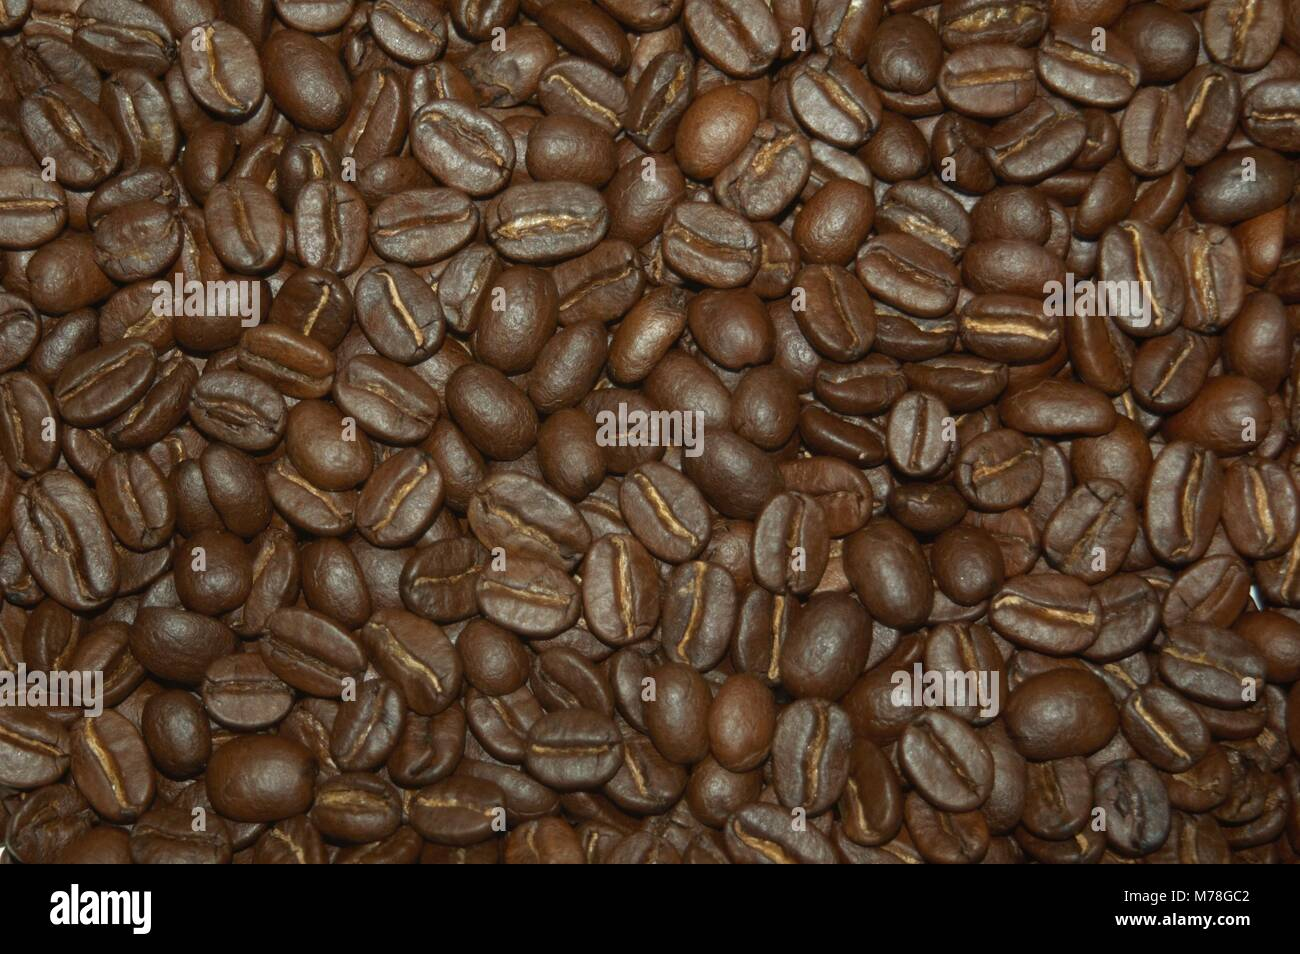 Tips When Searching For Fresh Roasted Coffee